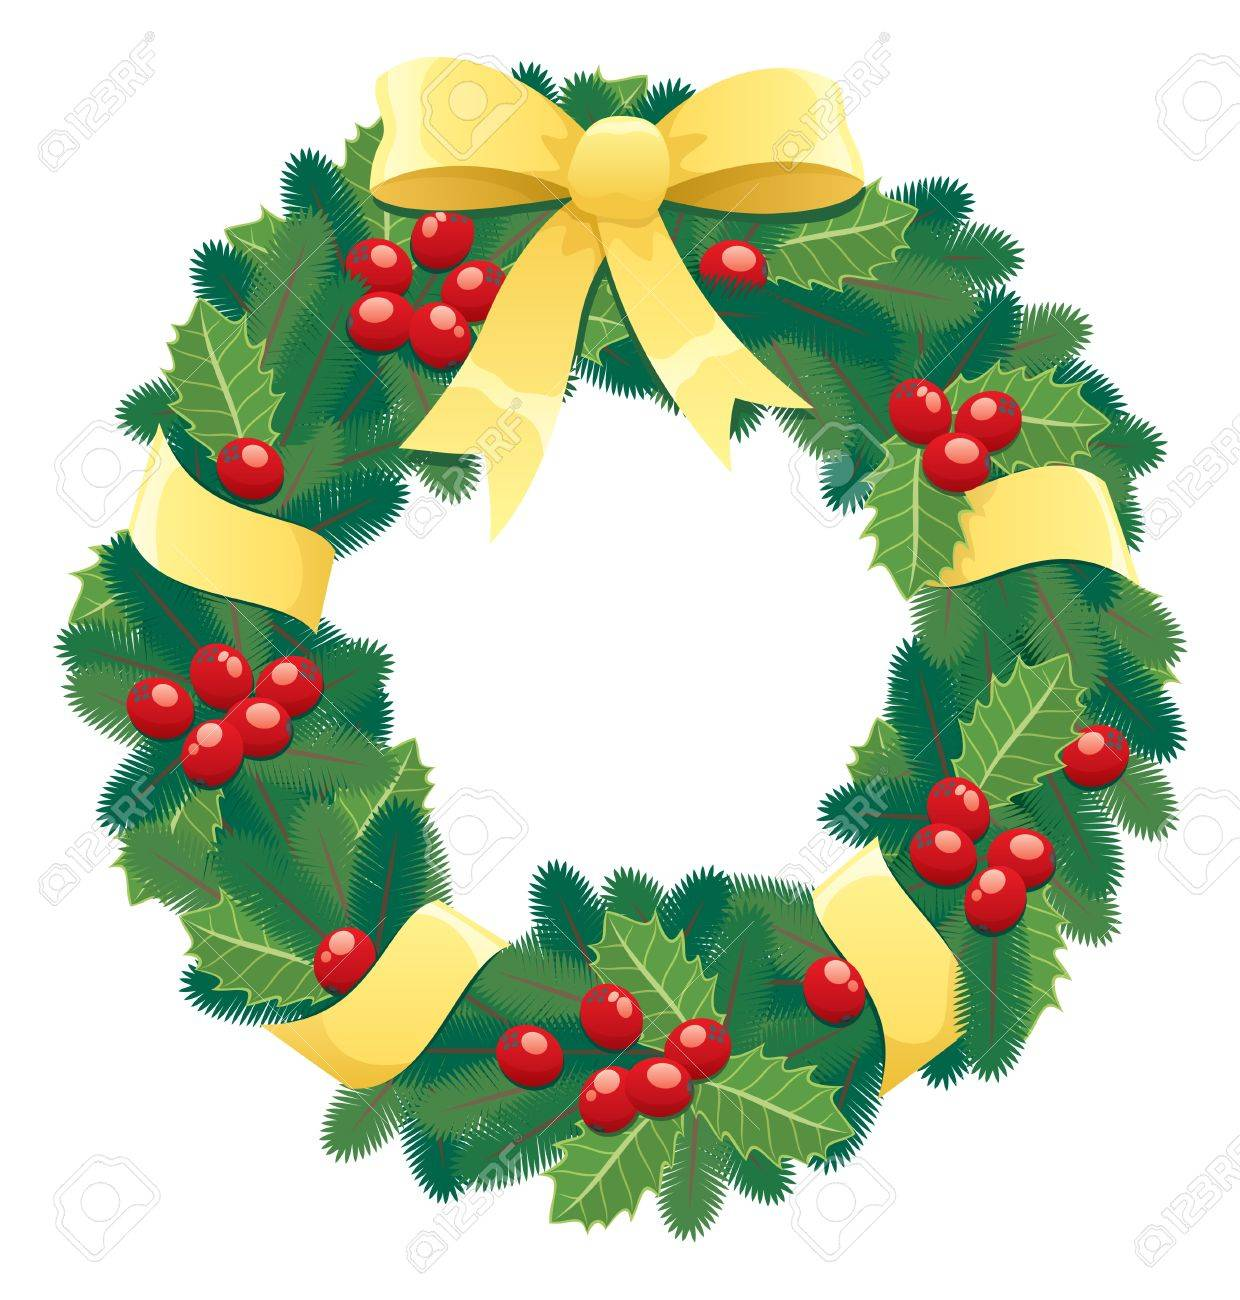 Christmas Wreath Images Free.A Christmas Wreath No Transparency Used Basic Linear Gradients